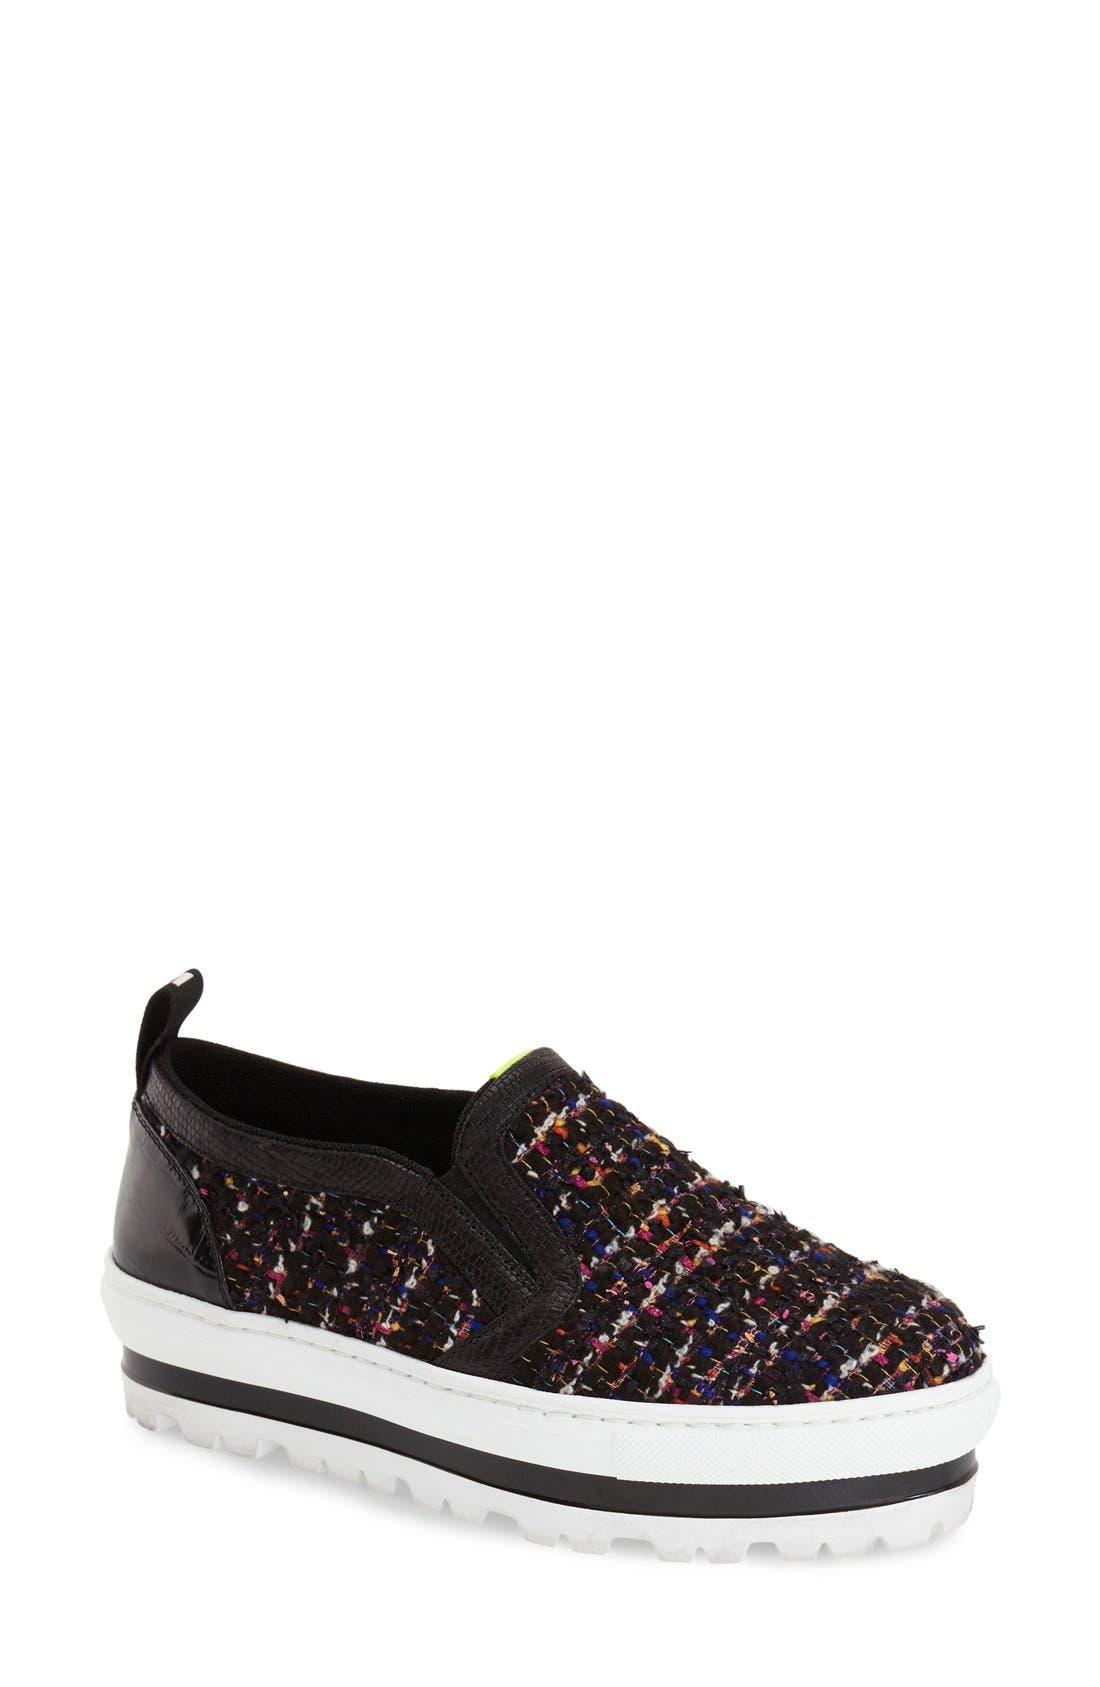 Alternate Image 1 Selected - MSGM Tweed Platform Slip-On Sneaker (Women)